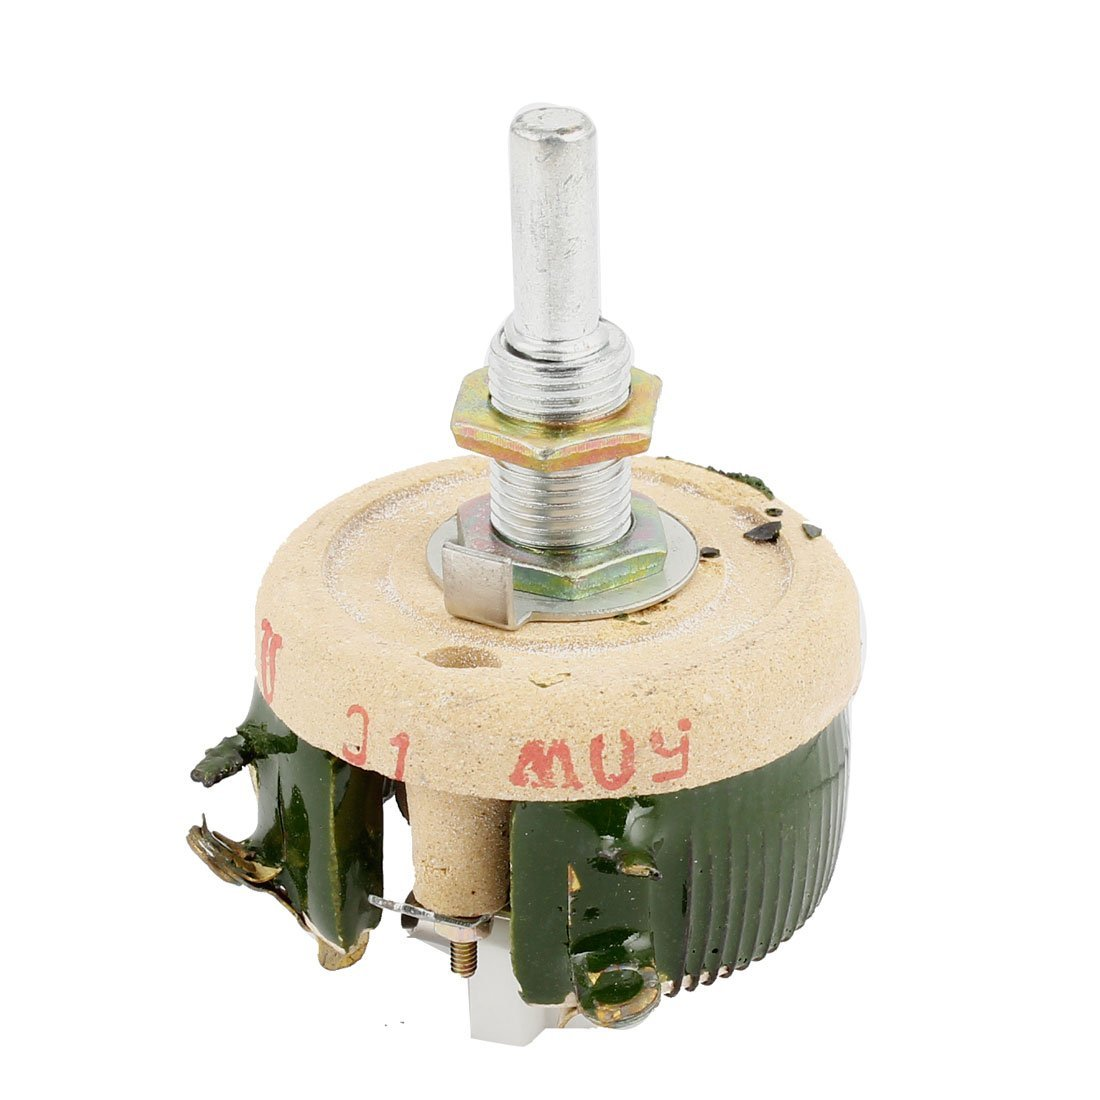 Winding Variable Indefinitely Max 64% OFF Resistance Rheostat with Ceramic core 50W O 10